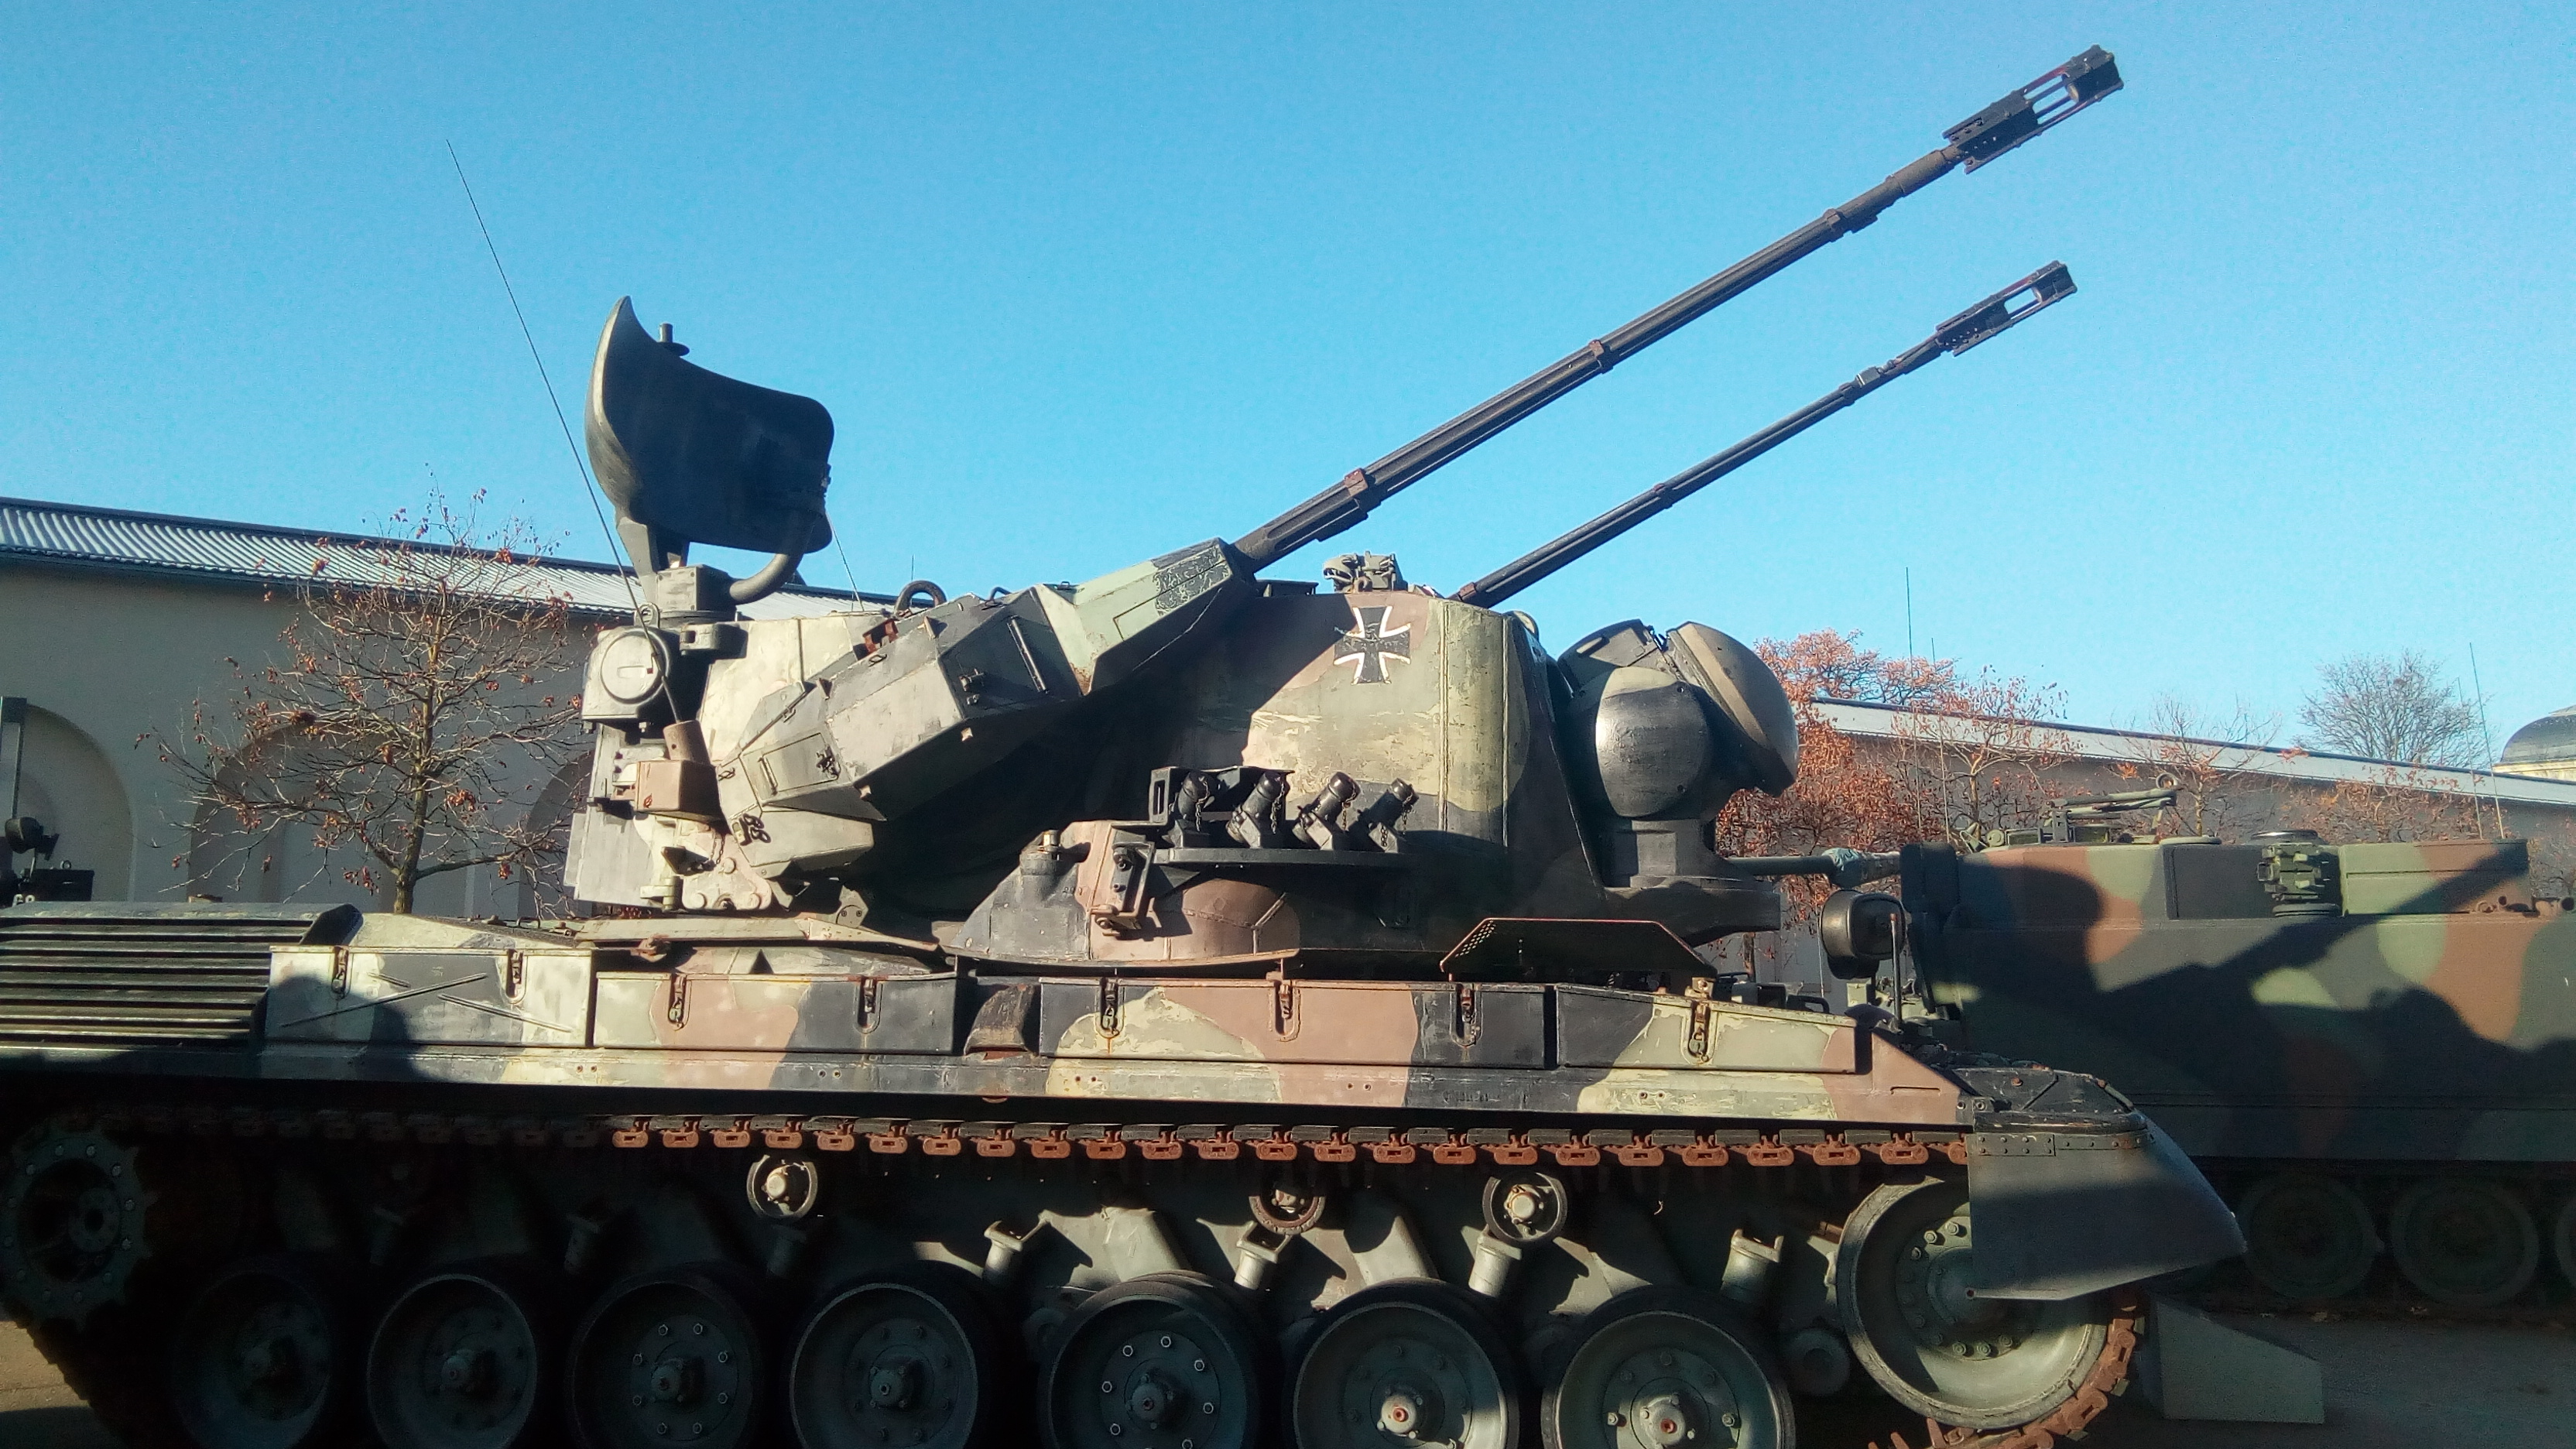 war-museum-5-german-tank